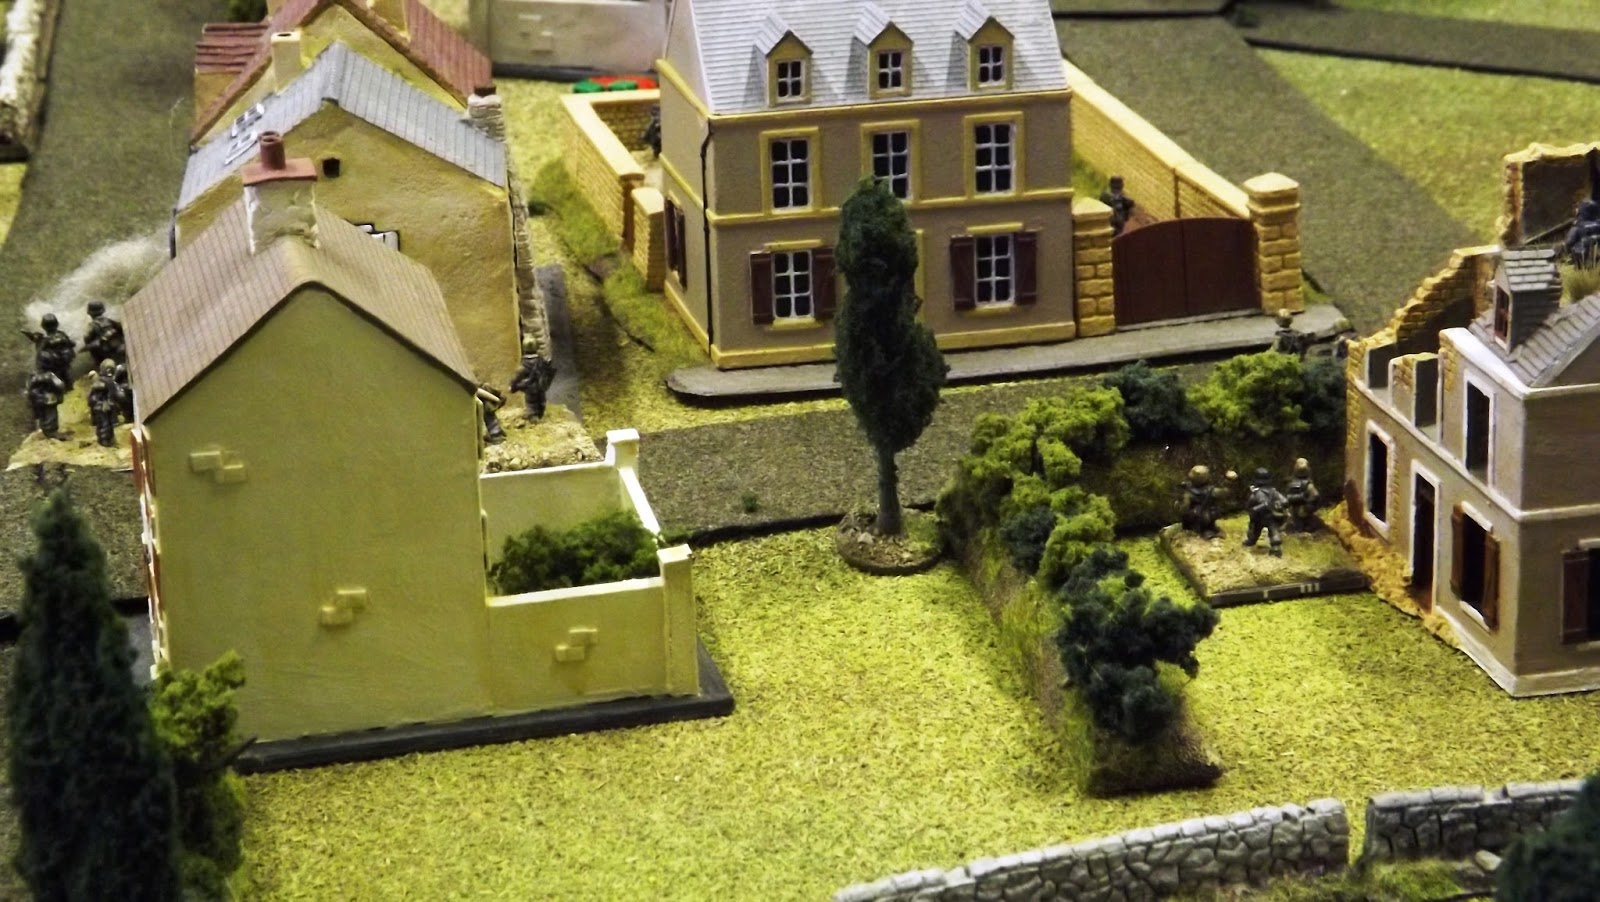 The staccato of small arms fire erupts as Colonel Ewell's men enter town